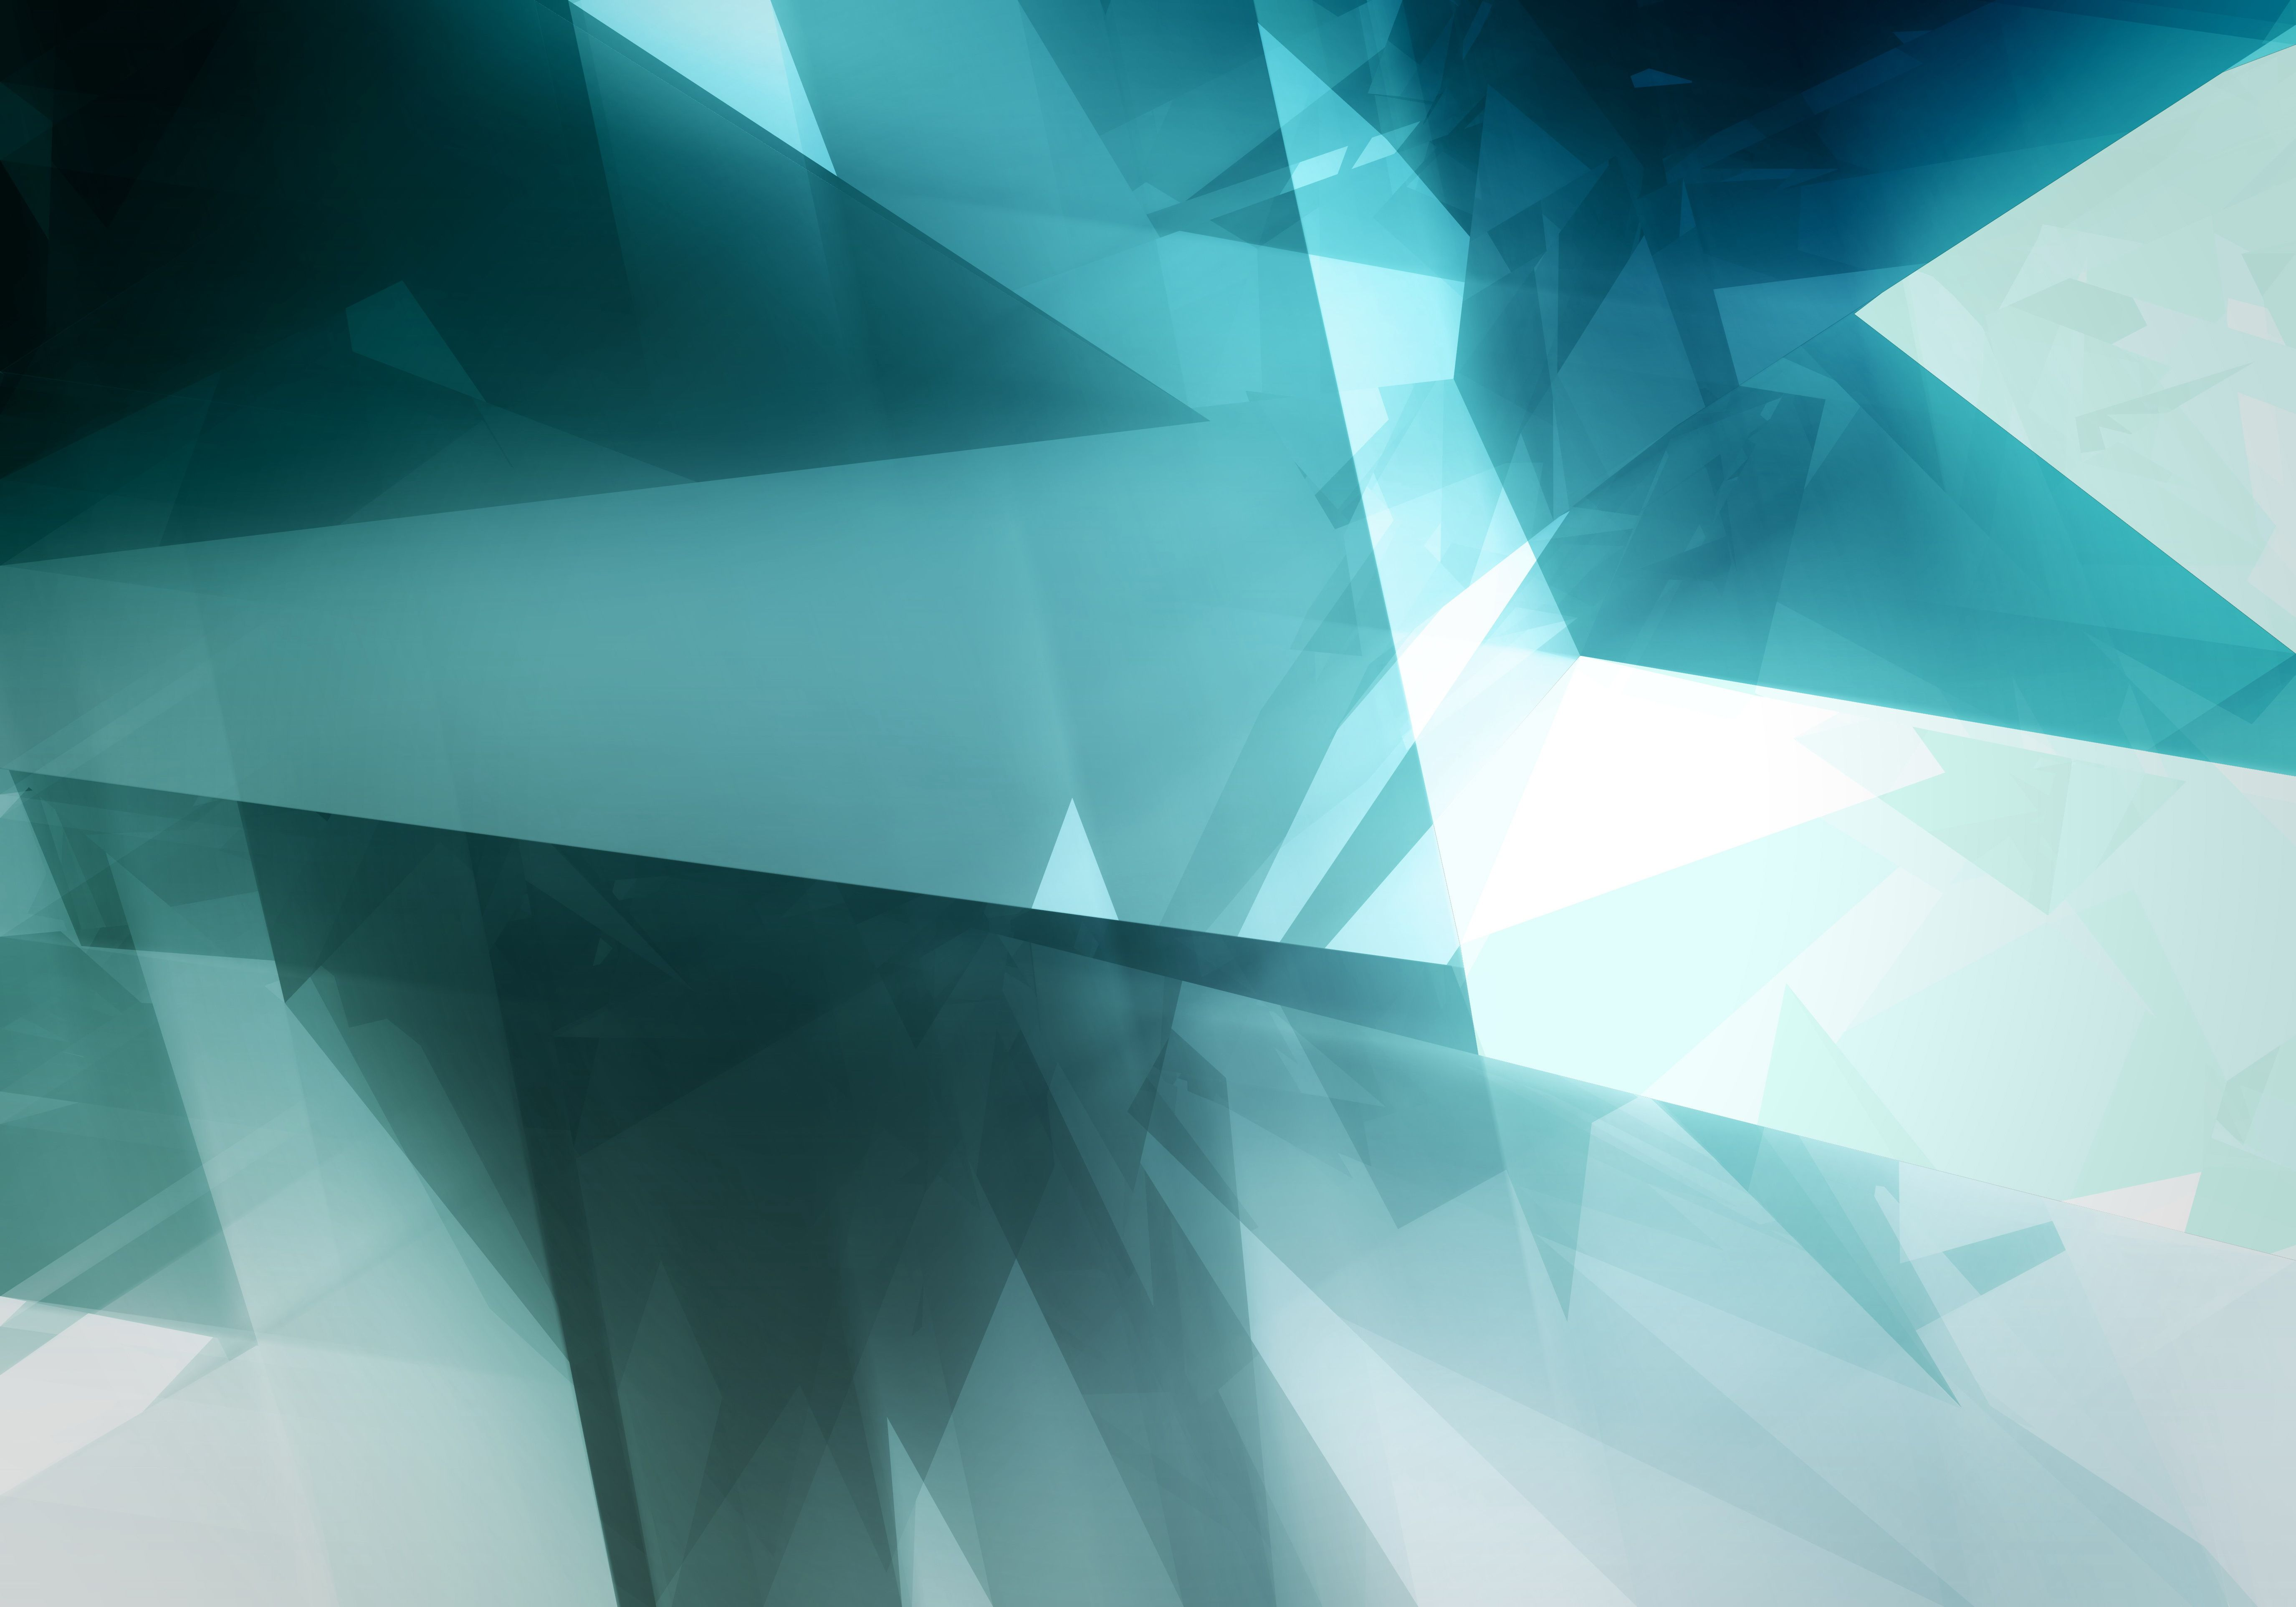 Turquoise HD Wallpapers Backgrounds